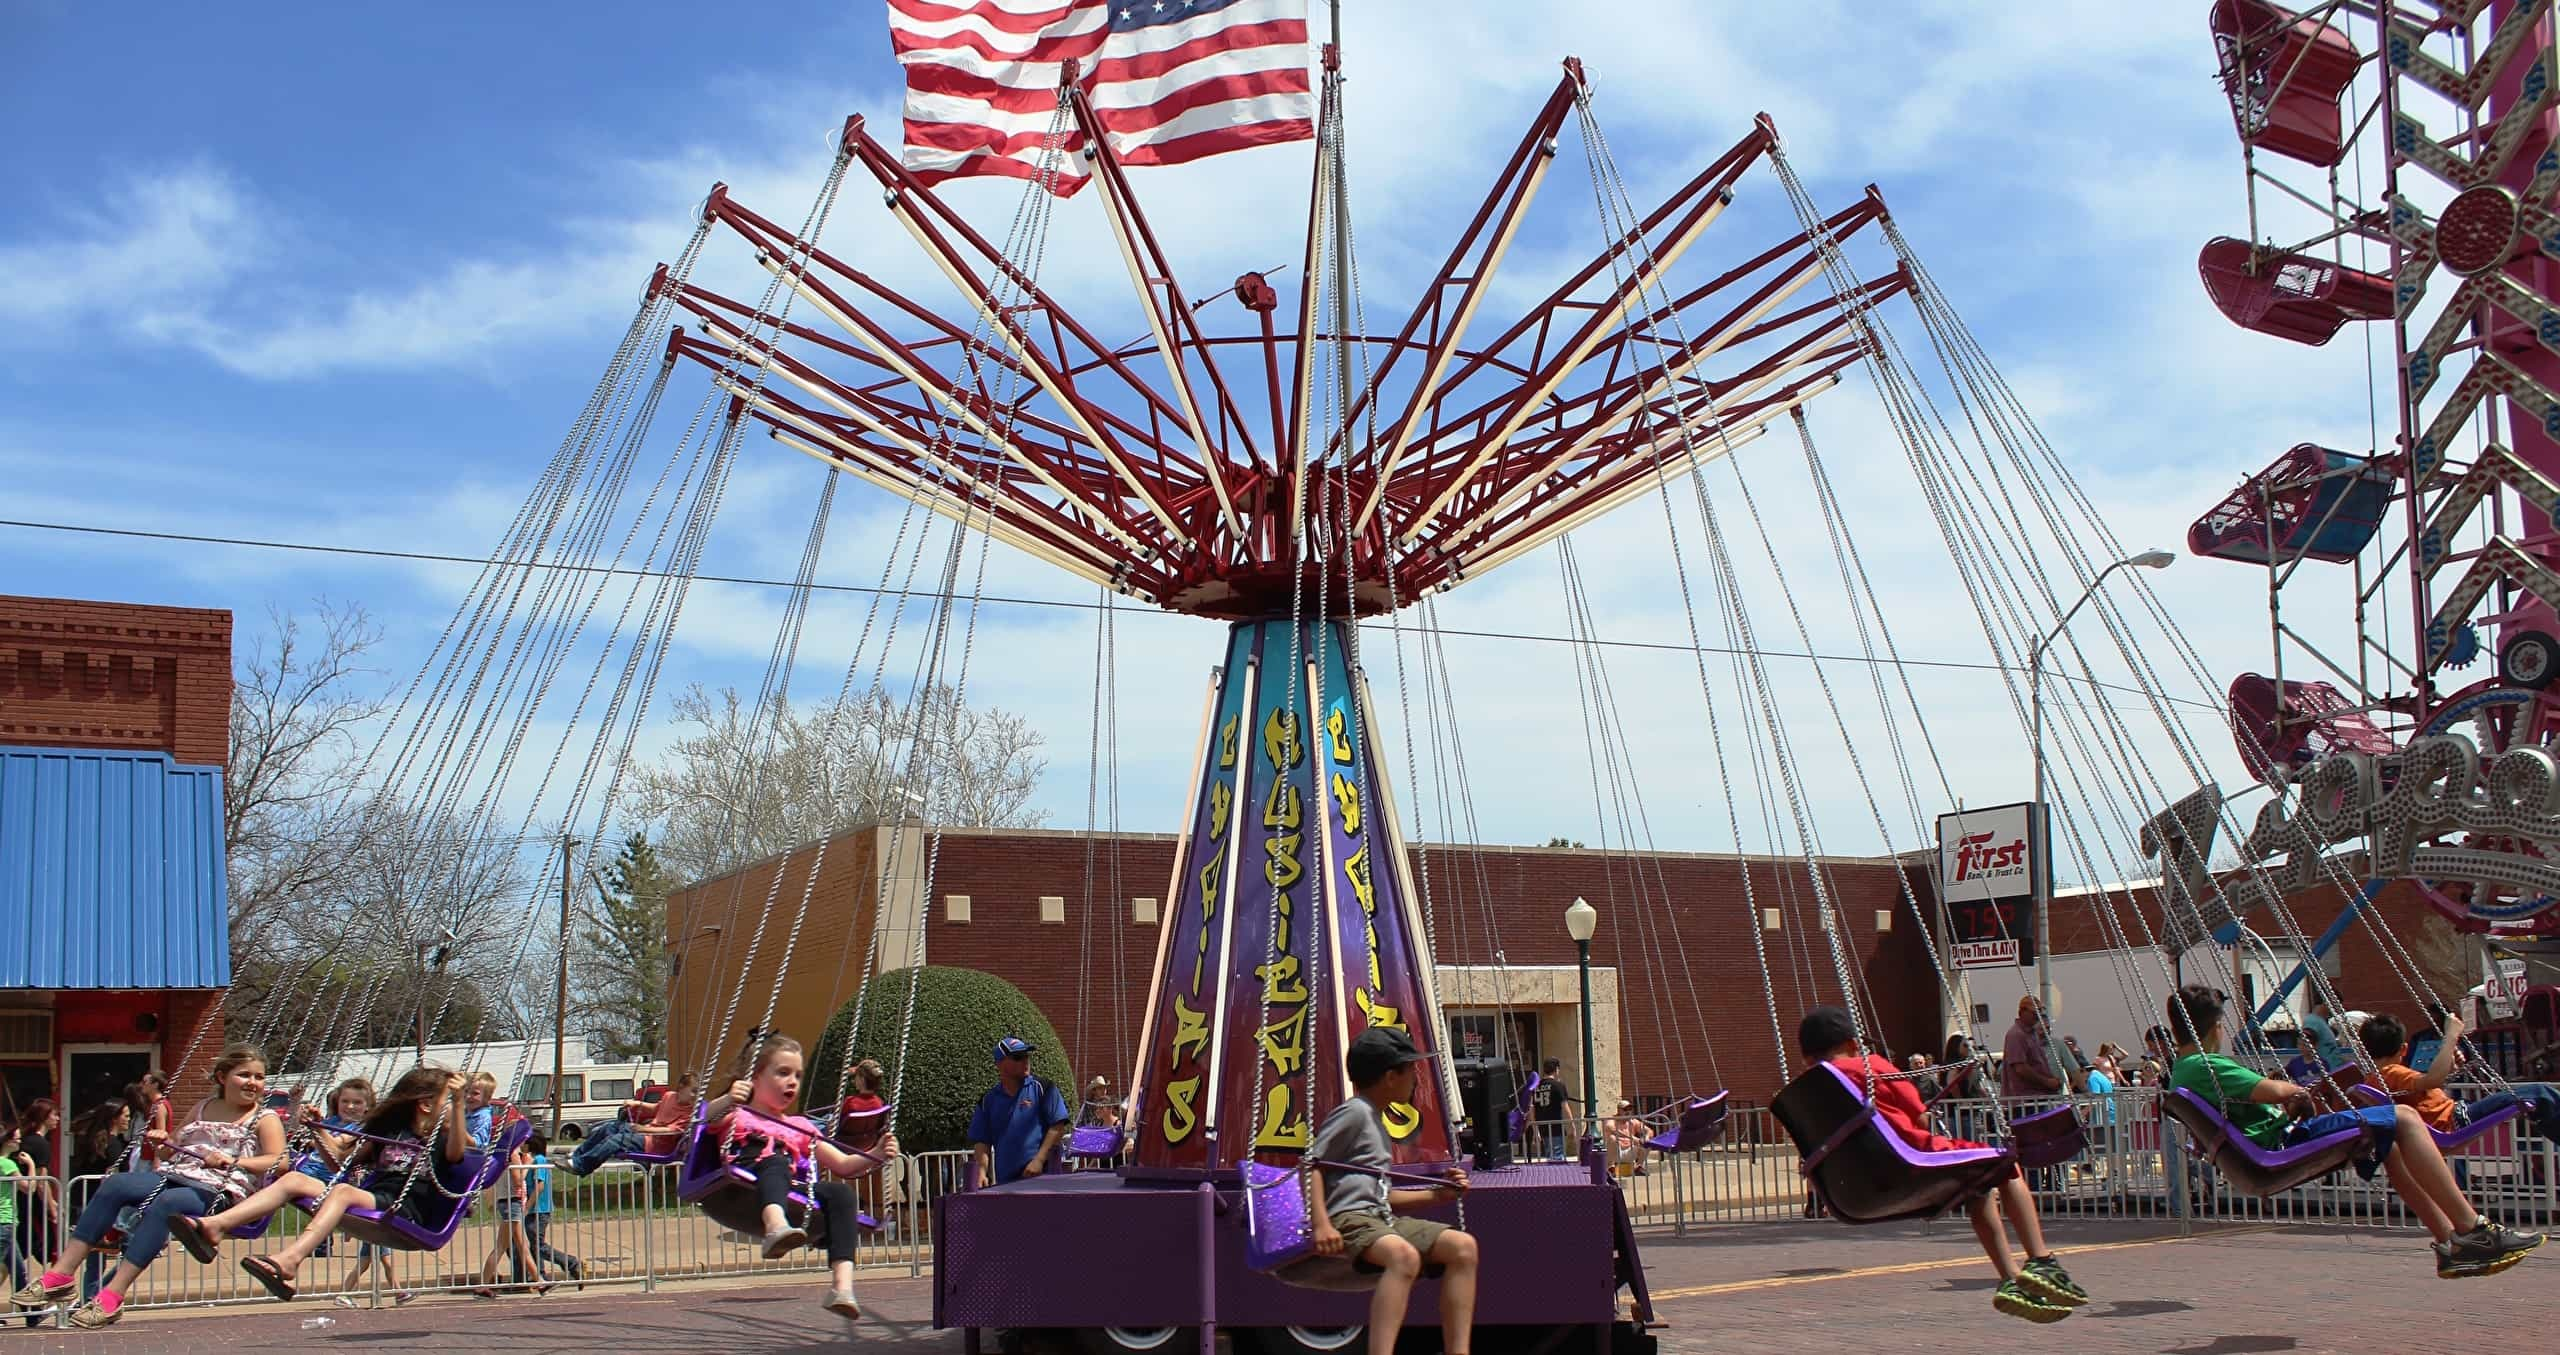 Swing ride at the love county festival